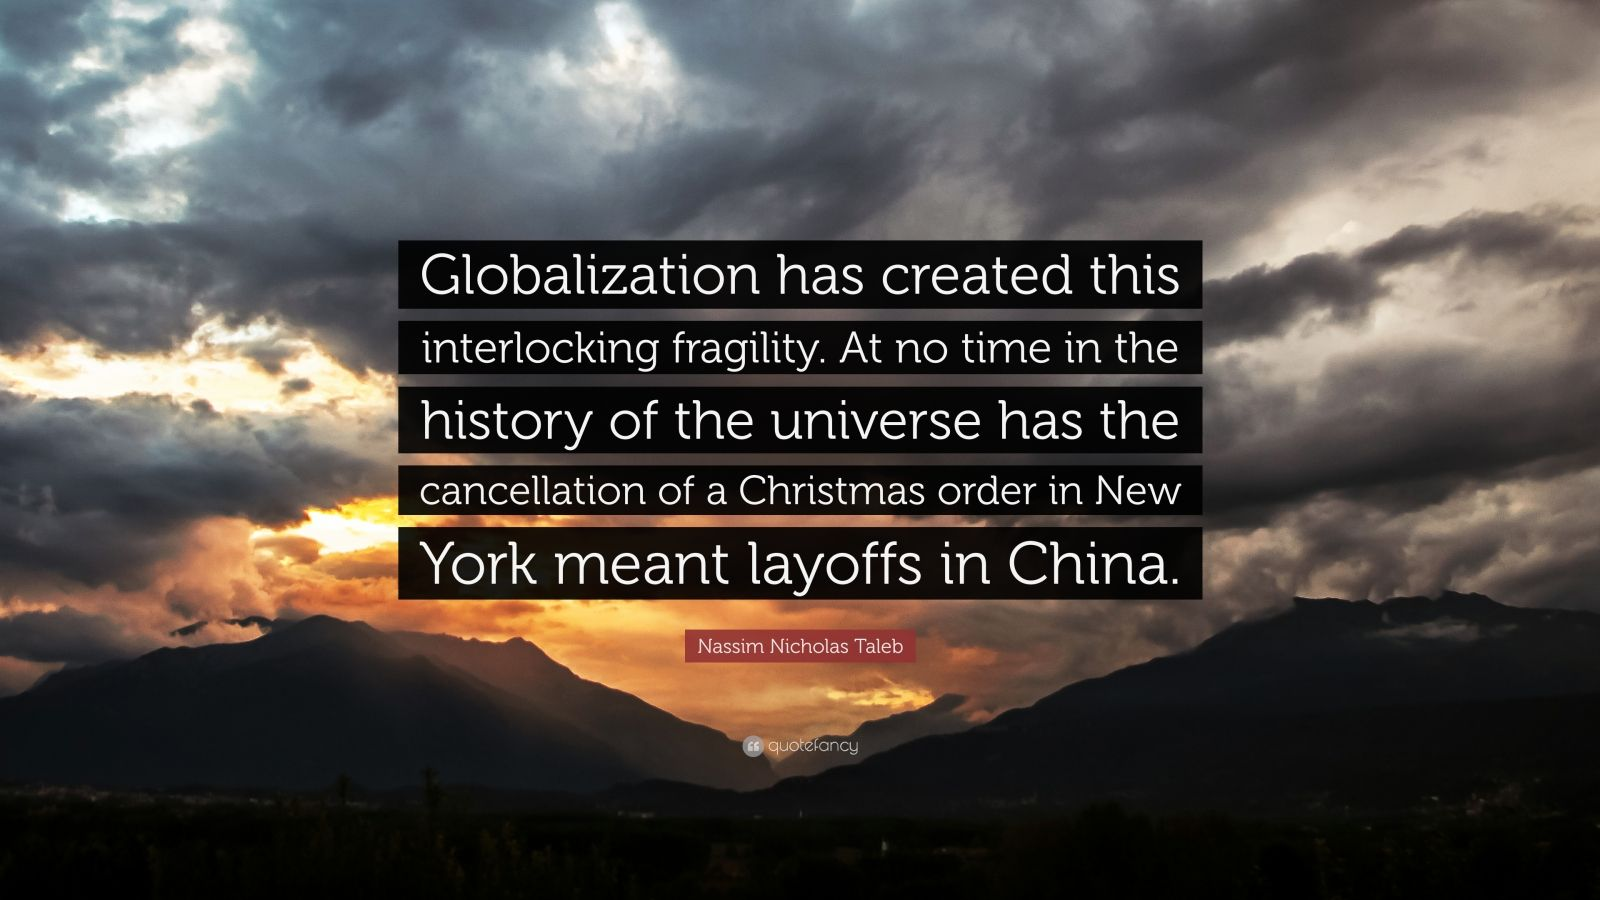 """Nassim Nicholas Taleb Quote: """"Globalization has created this interlocking fragility. At no time in the history of the universe has the cancellation of a Christmas order in New York meant layoffs in China."""""""